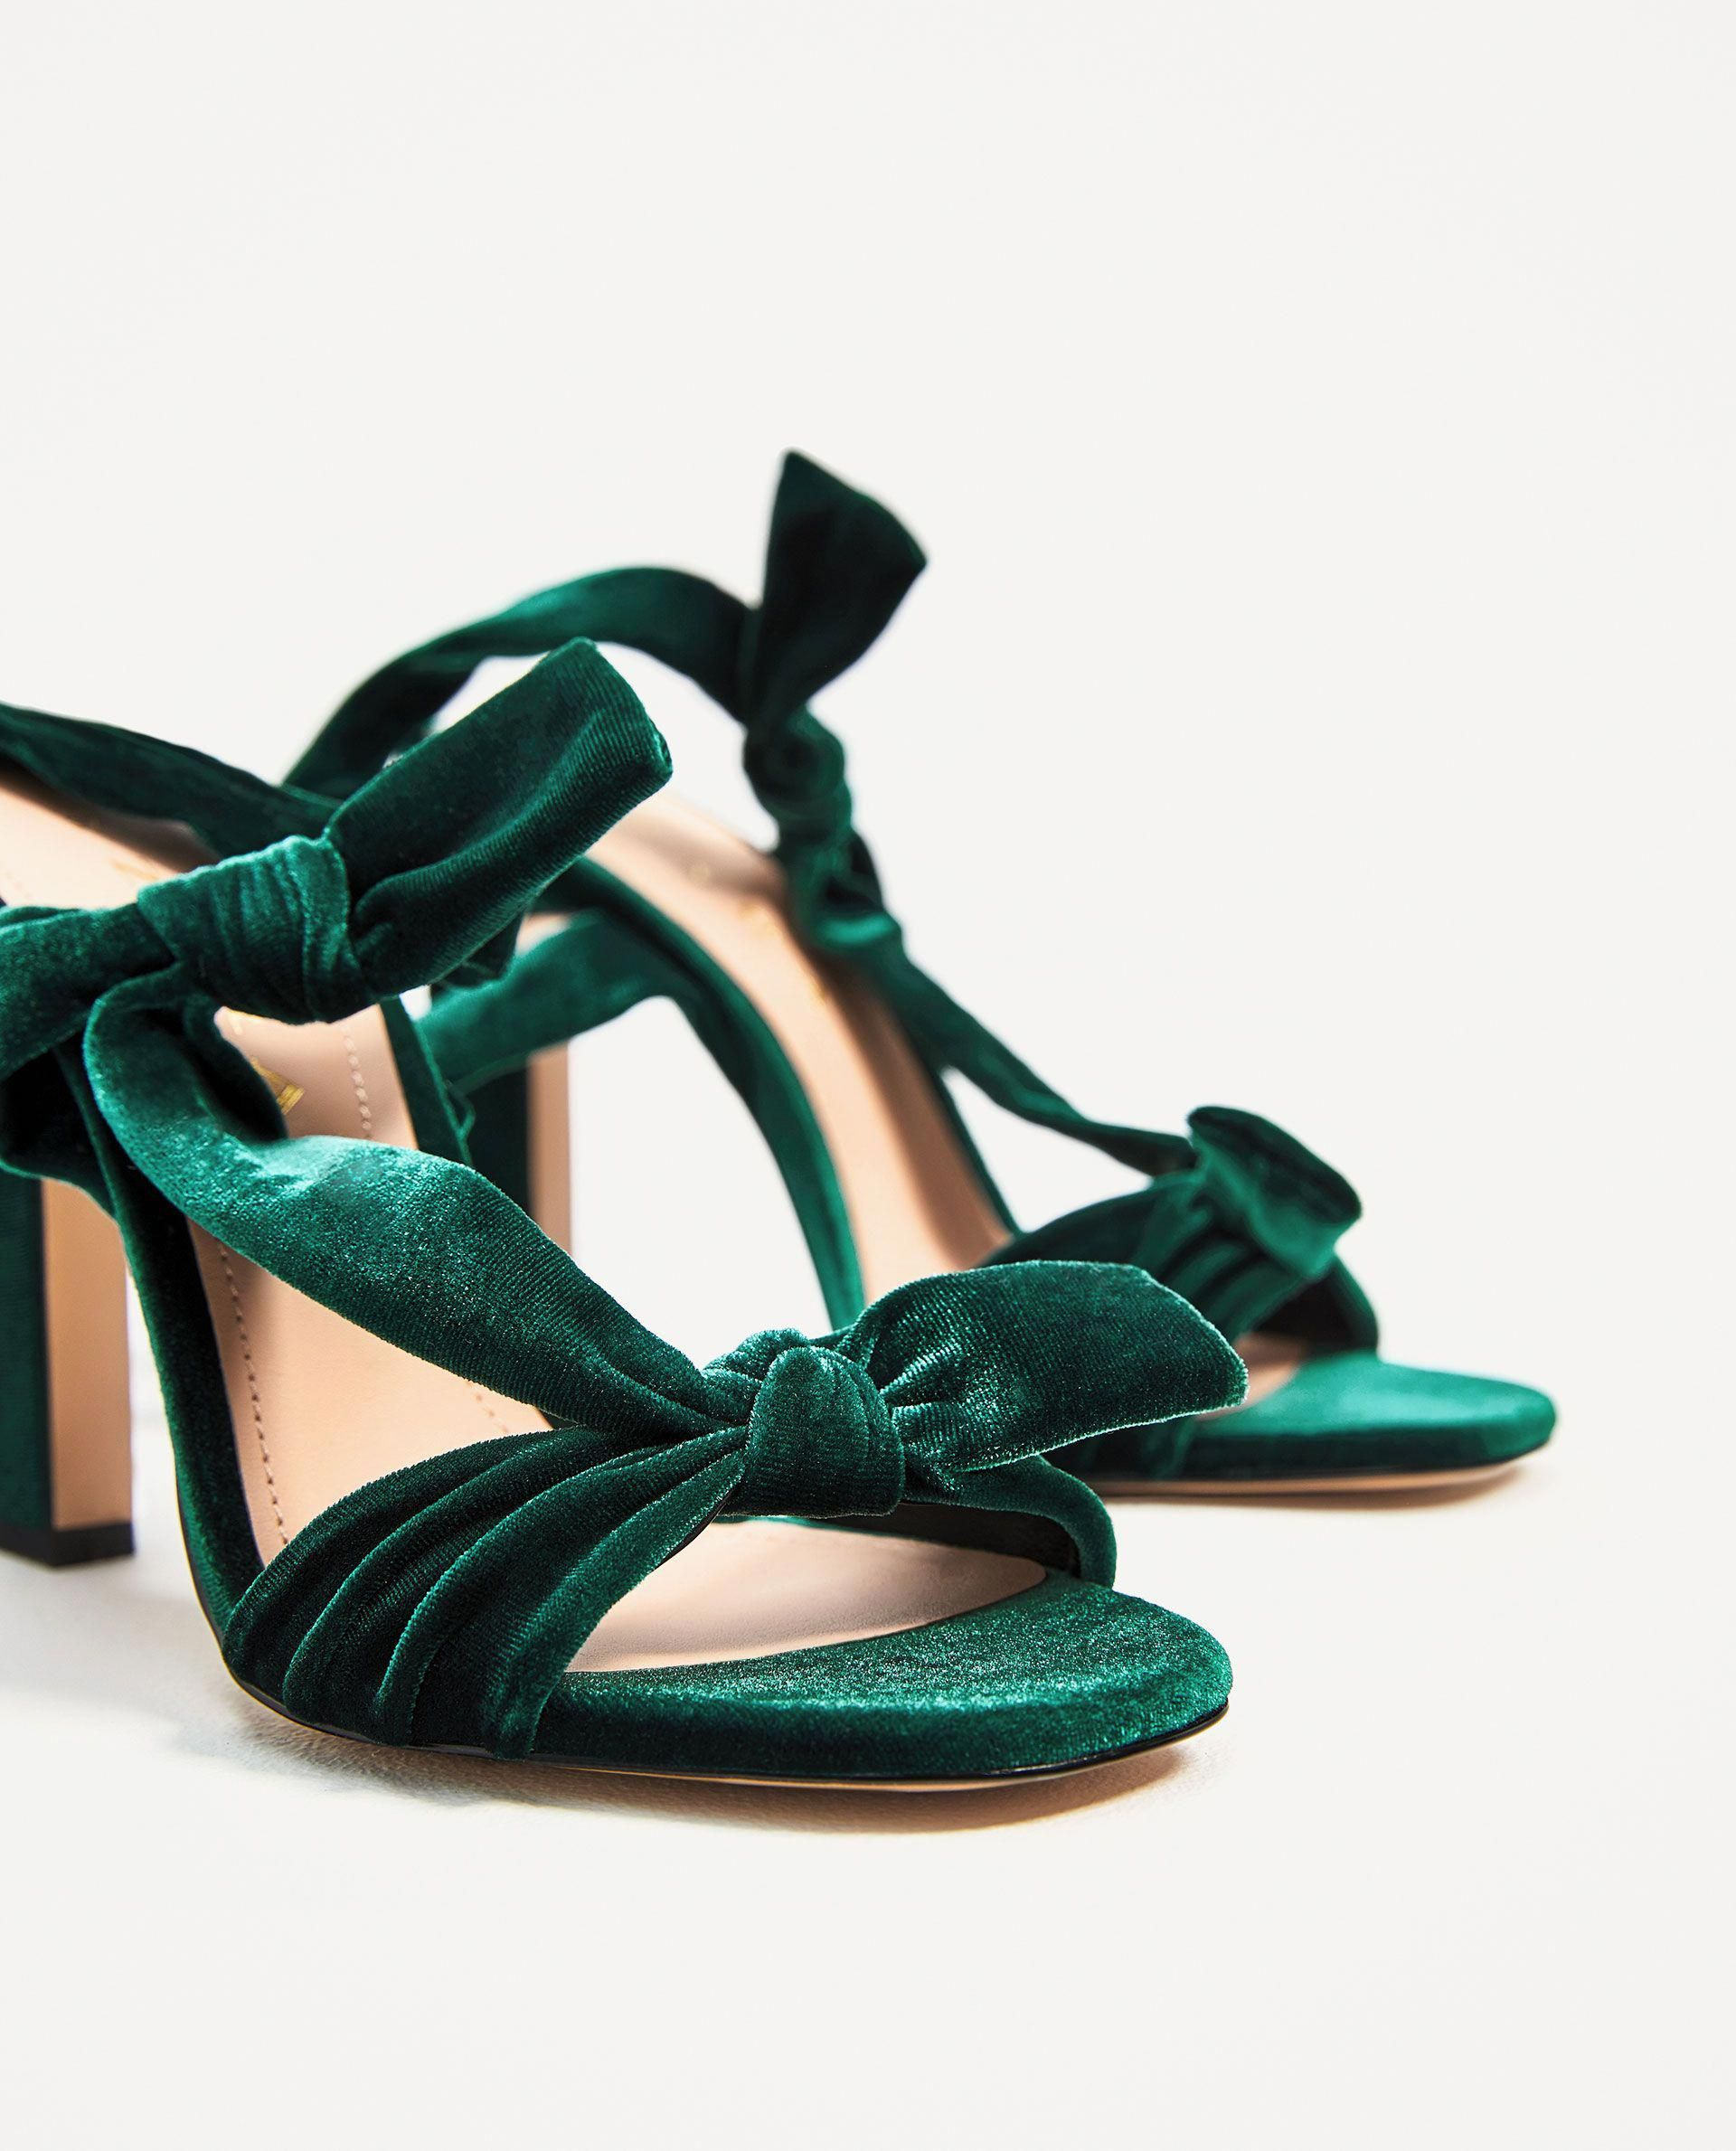 086215171fa ZARA - WOMAN - VELVET LACE-UP HIGH HEEL SANDALS  YourPinterestLikes Green  Sandals